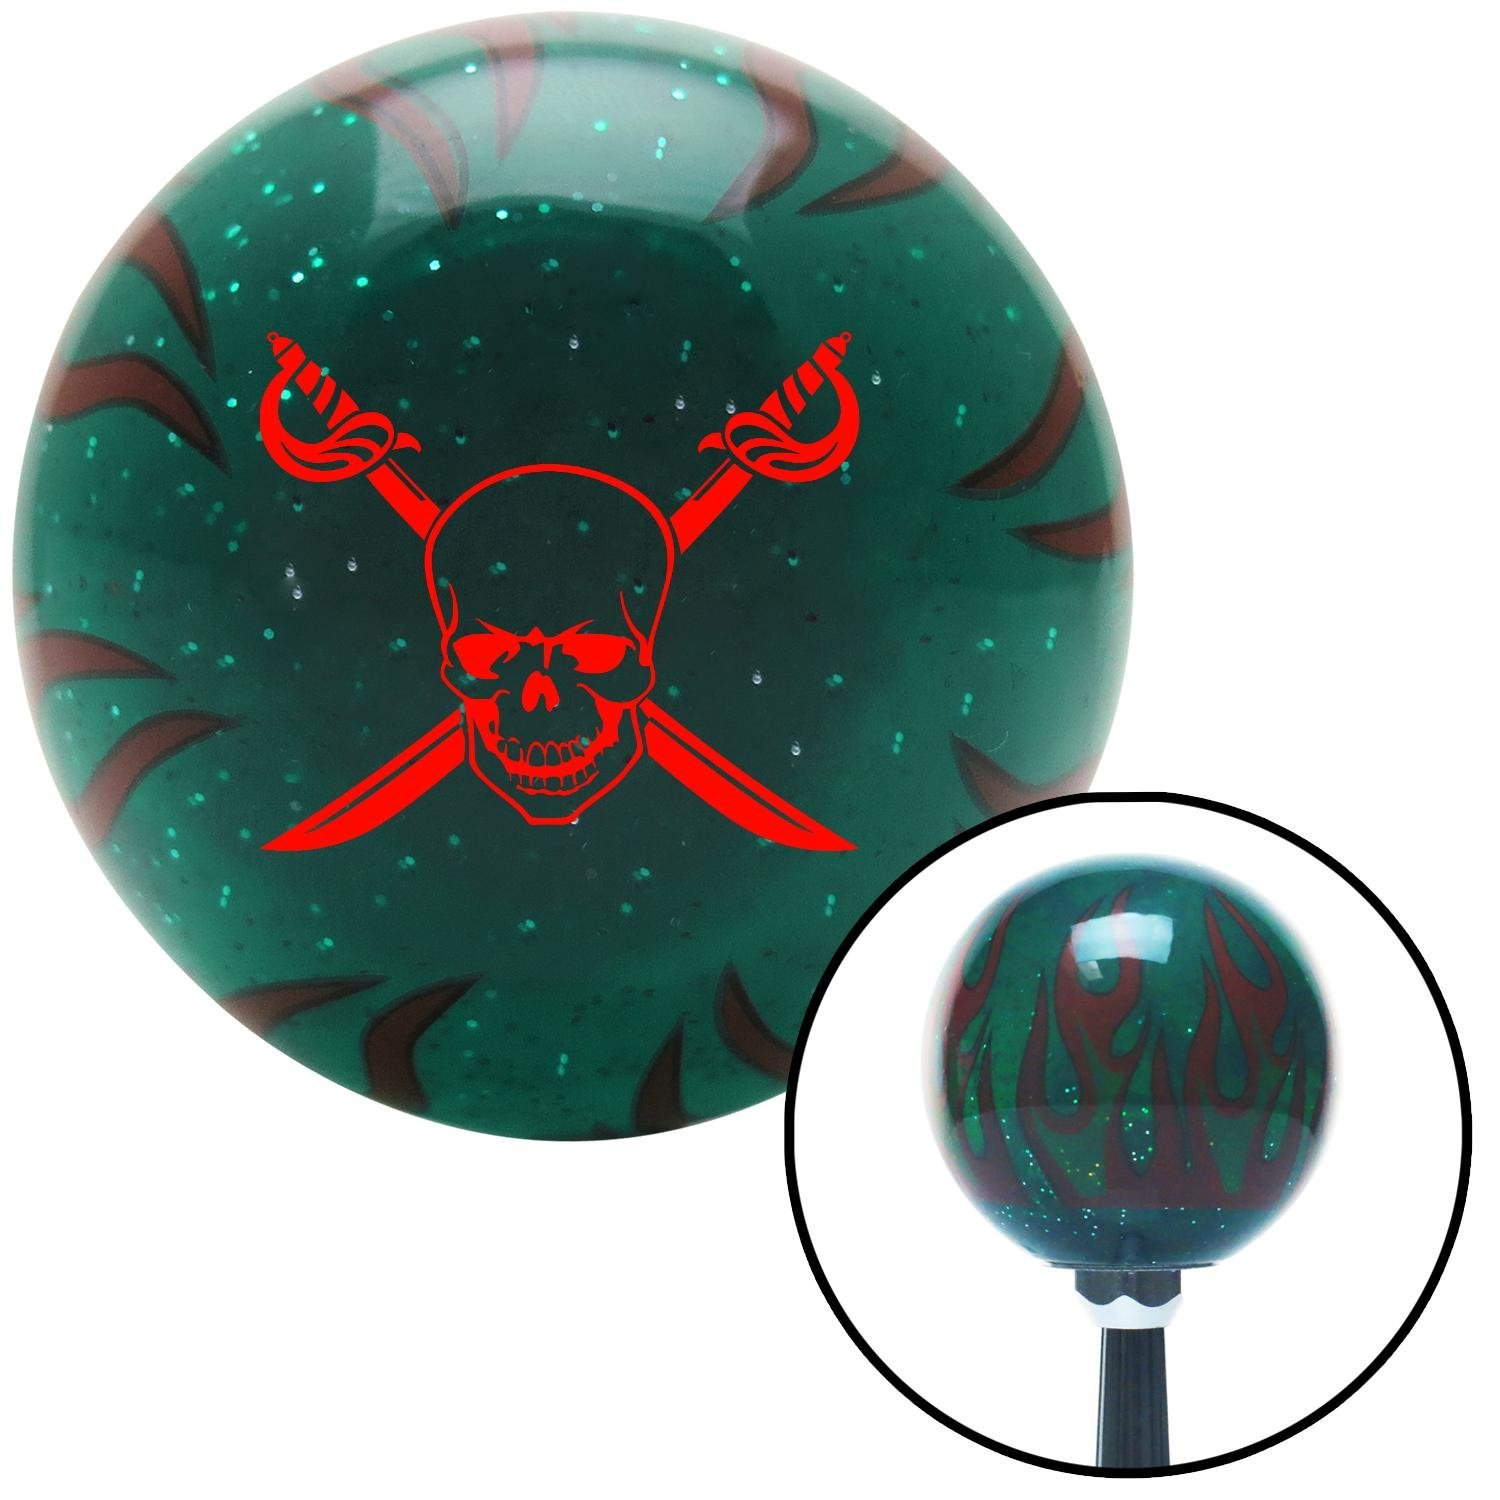 American Shifter 266121 Green Flame Metal Flake Shift Knob with M16 x 1.5 Insert Red Skulls /& Gothic Skull /& Crossed Swords